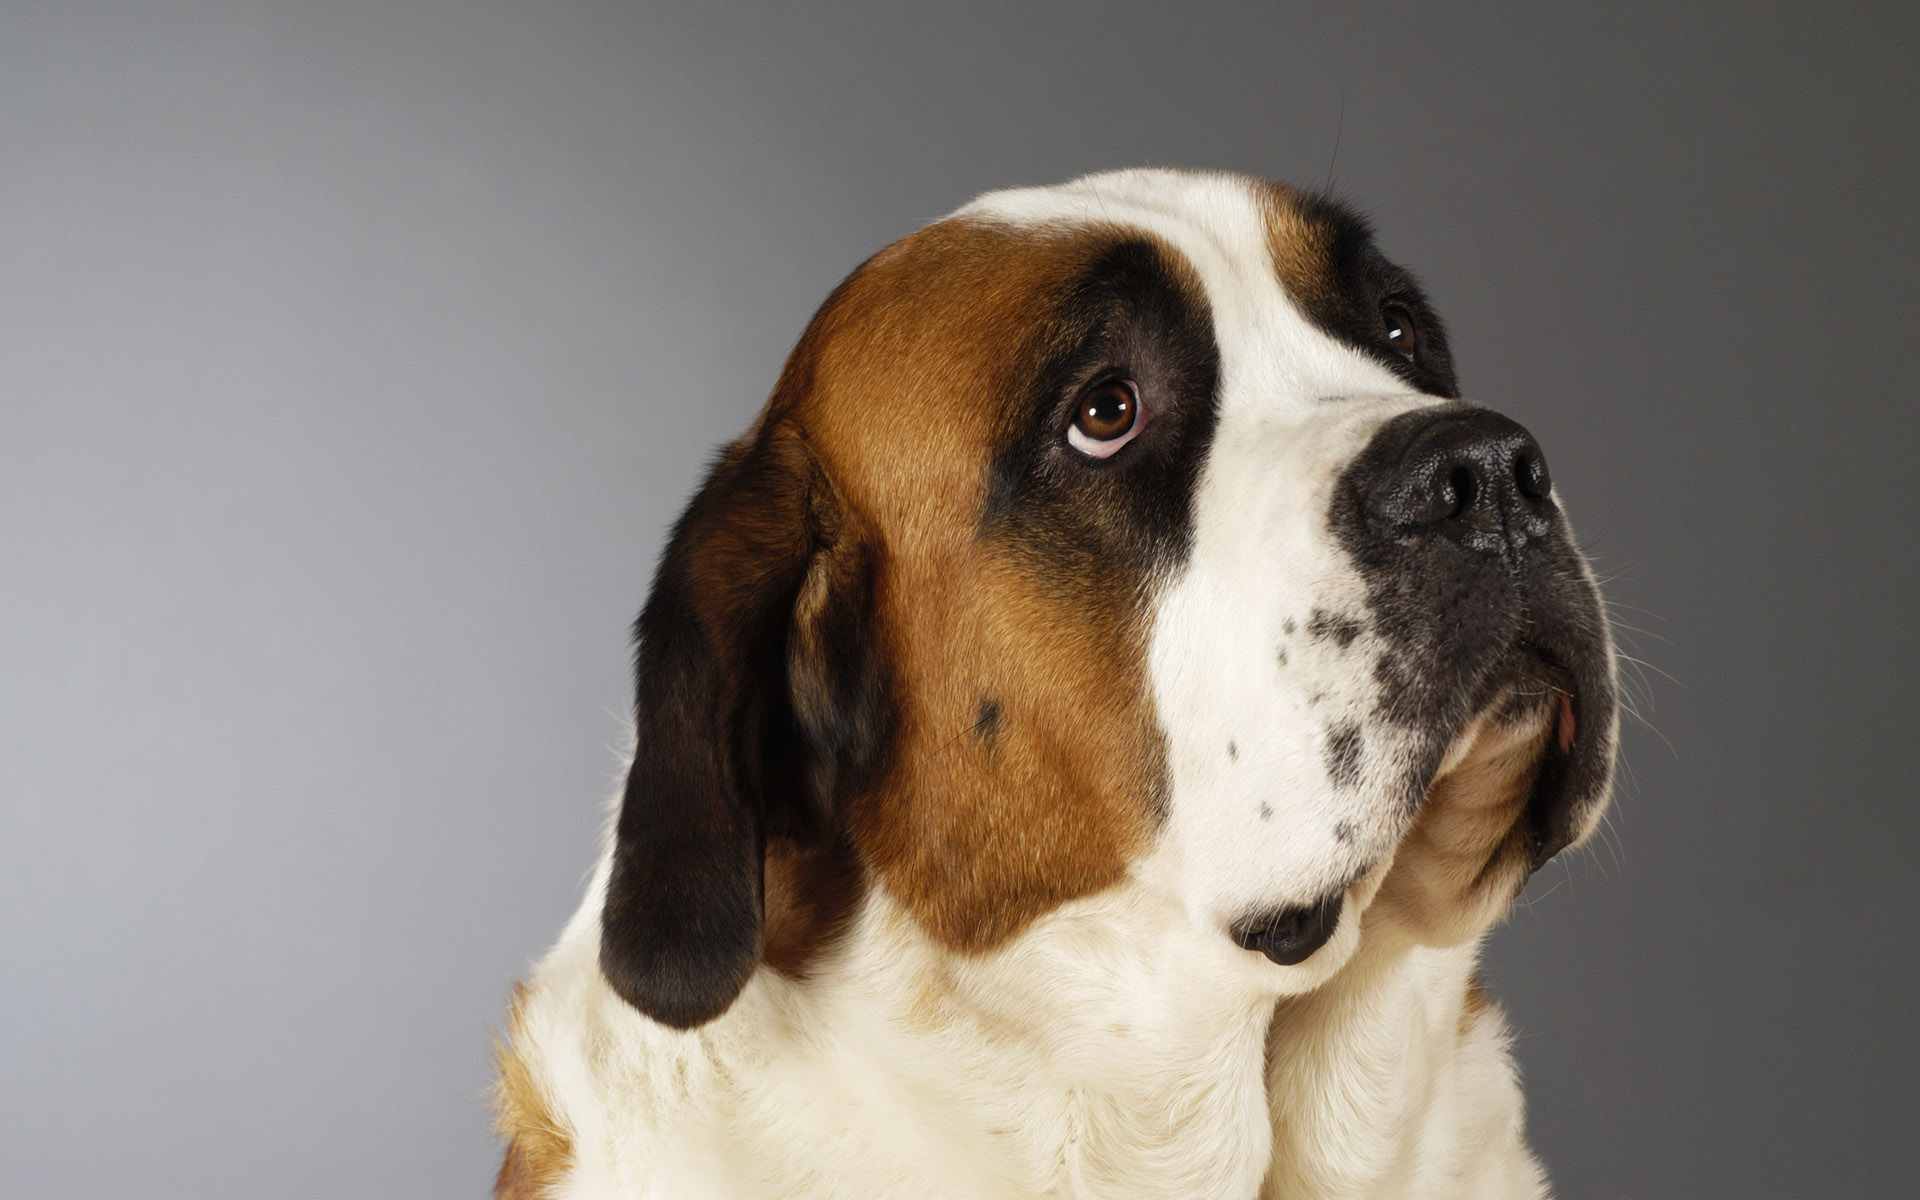 St. Bernard Computer Wallpapers, Desktop Backgrounds